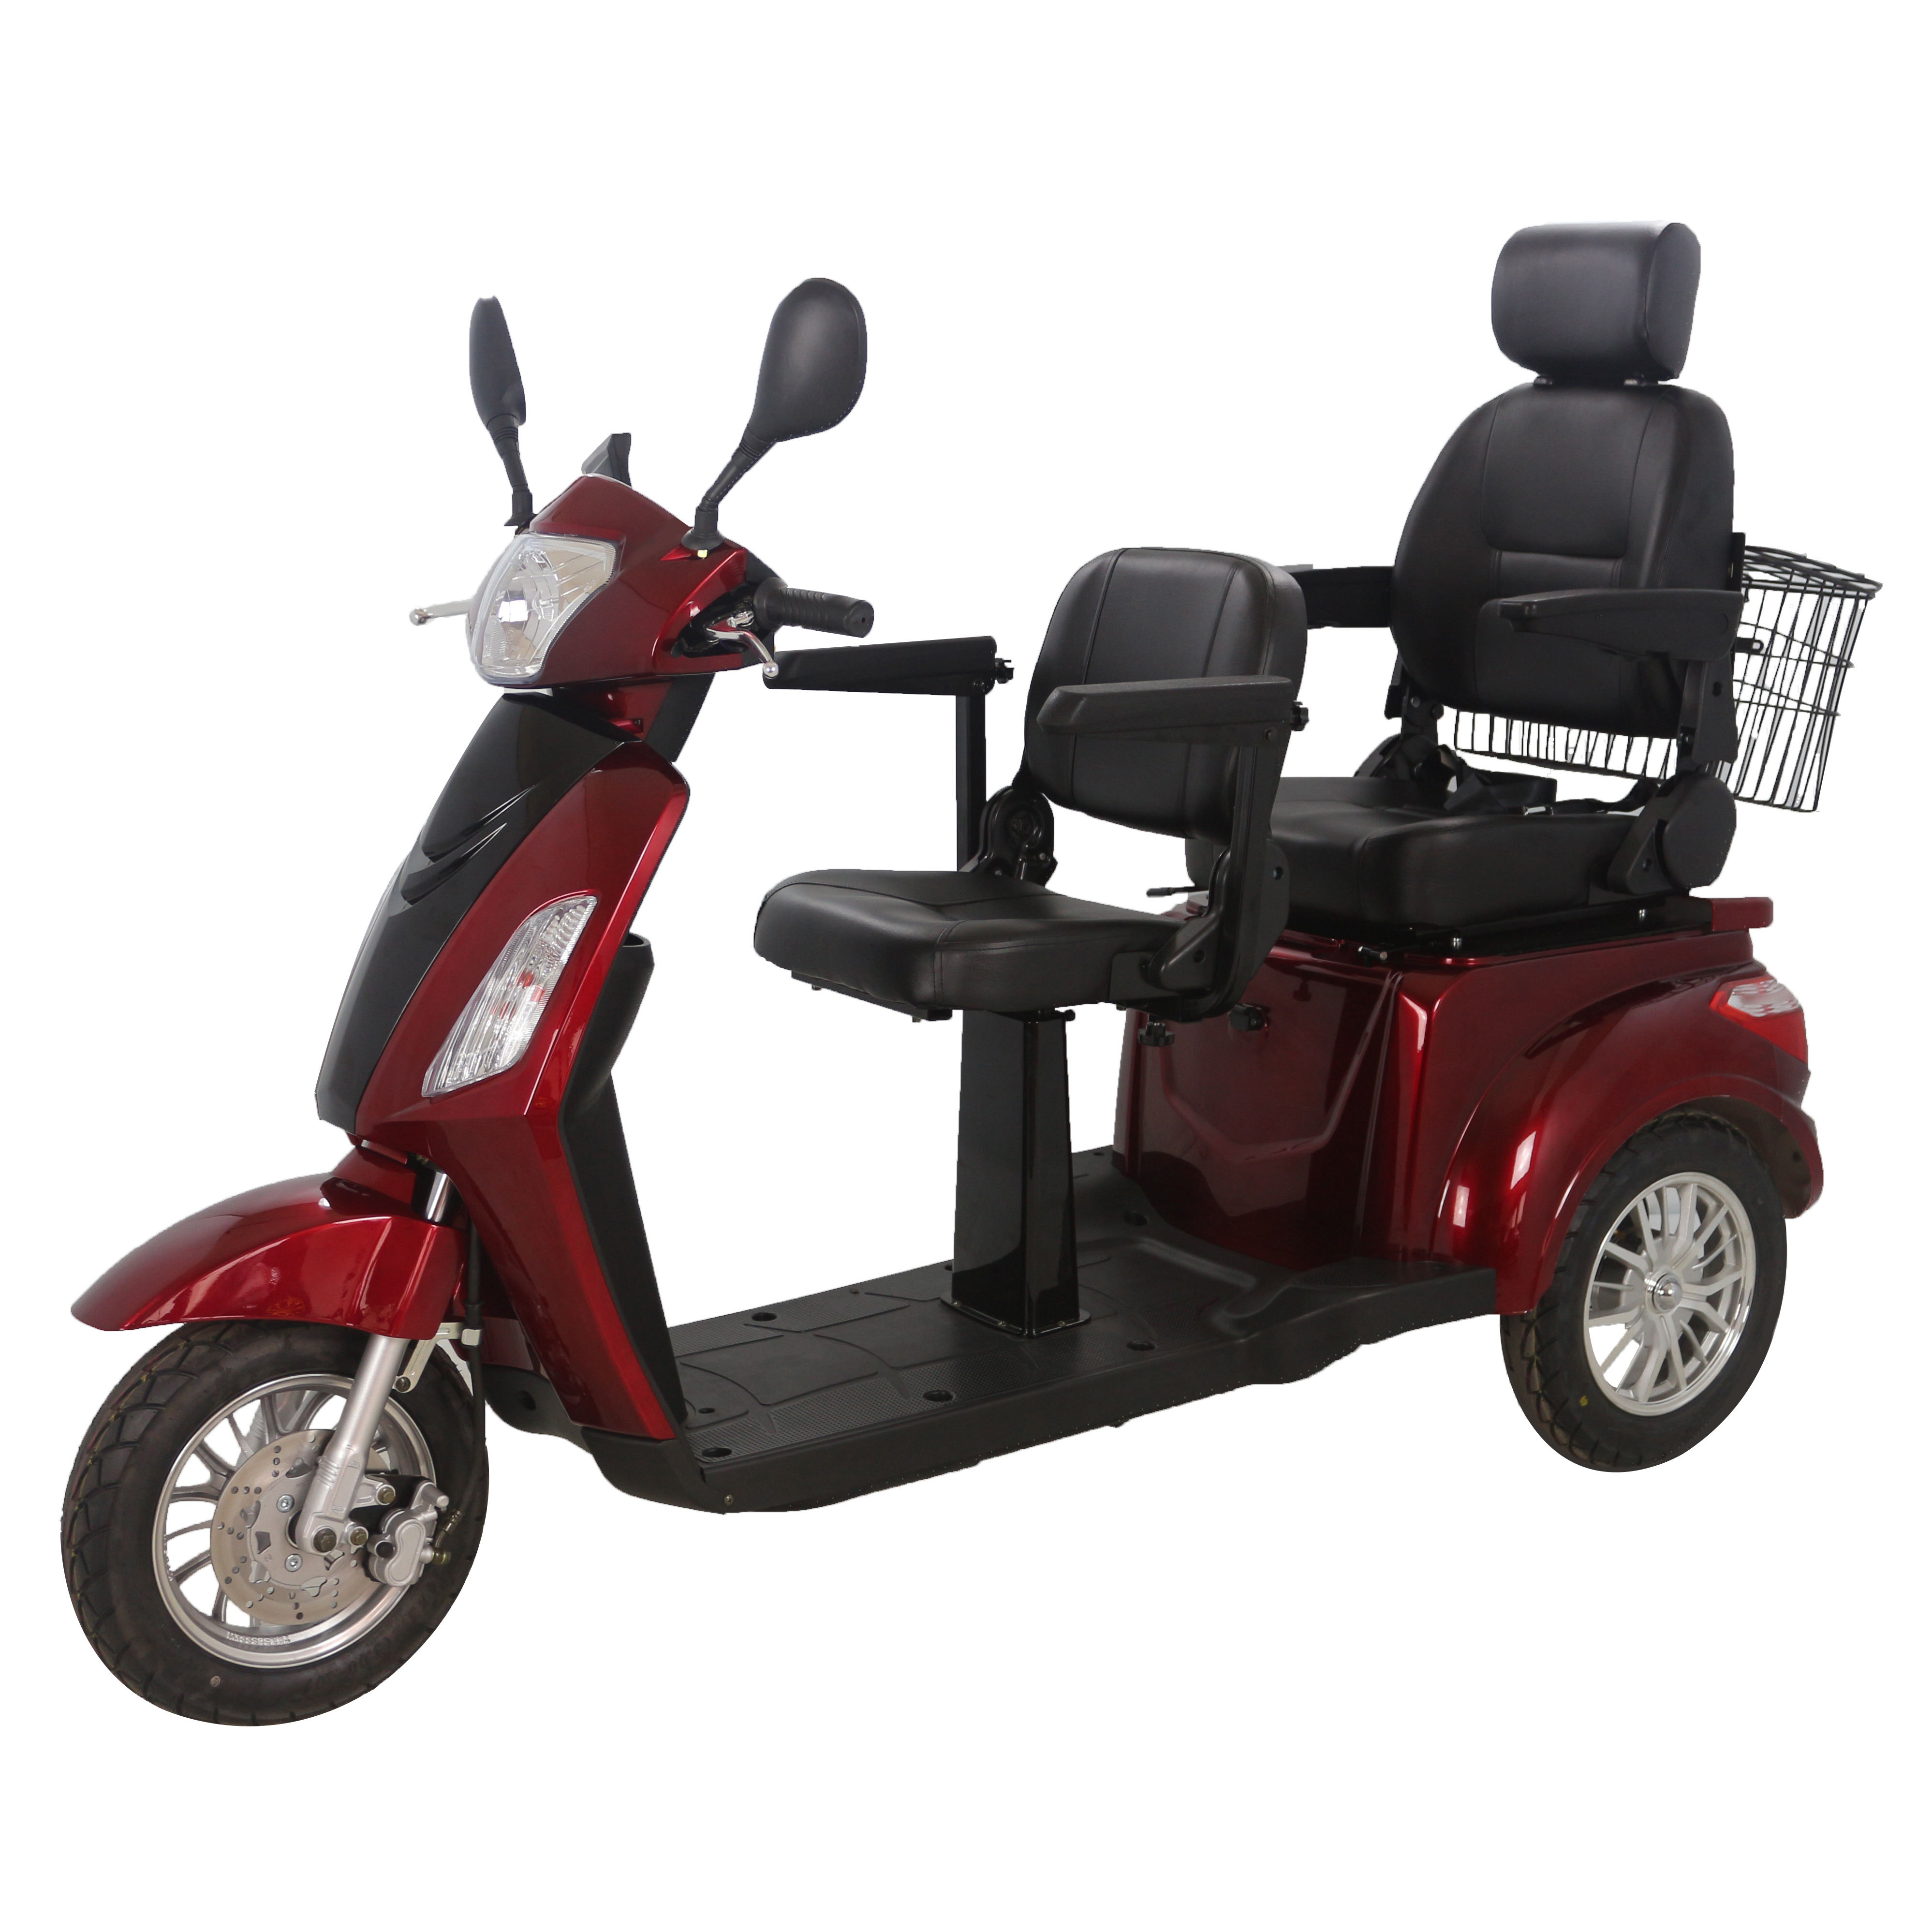 Adult electric motorcycle three wheel vehicles 60V500W scooter for sale tricycles